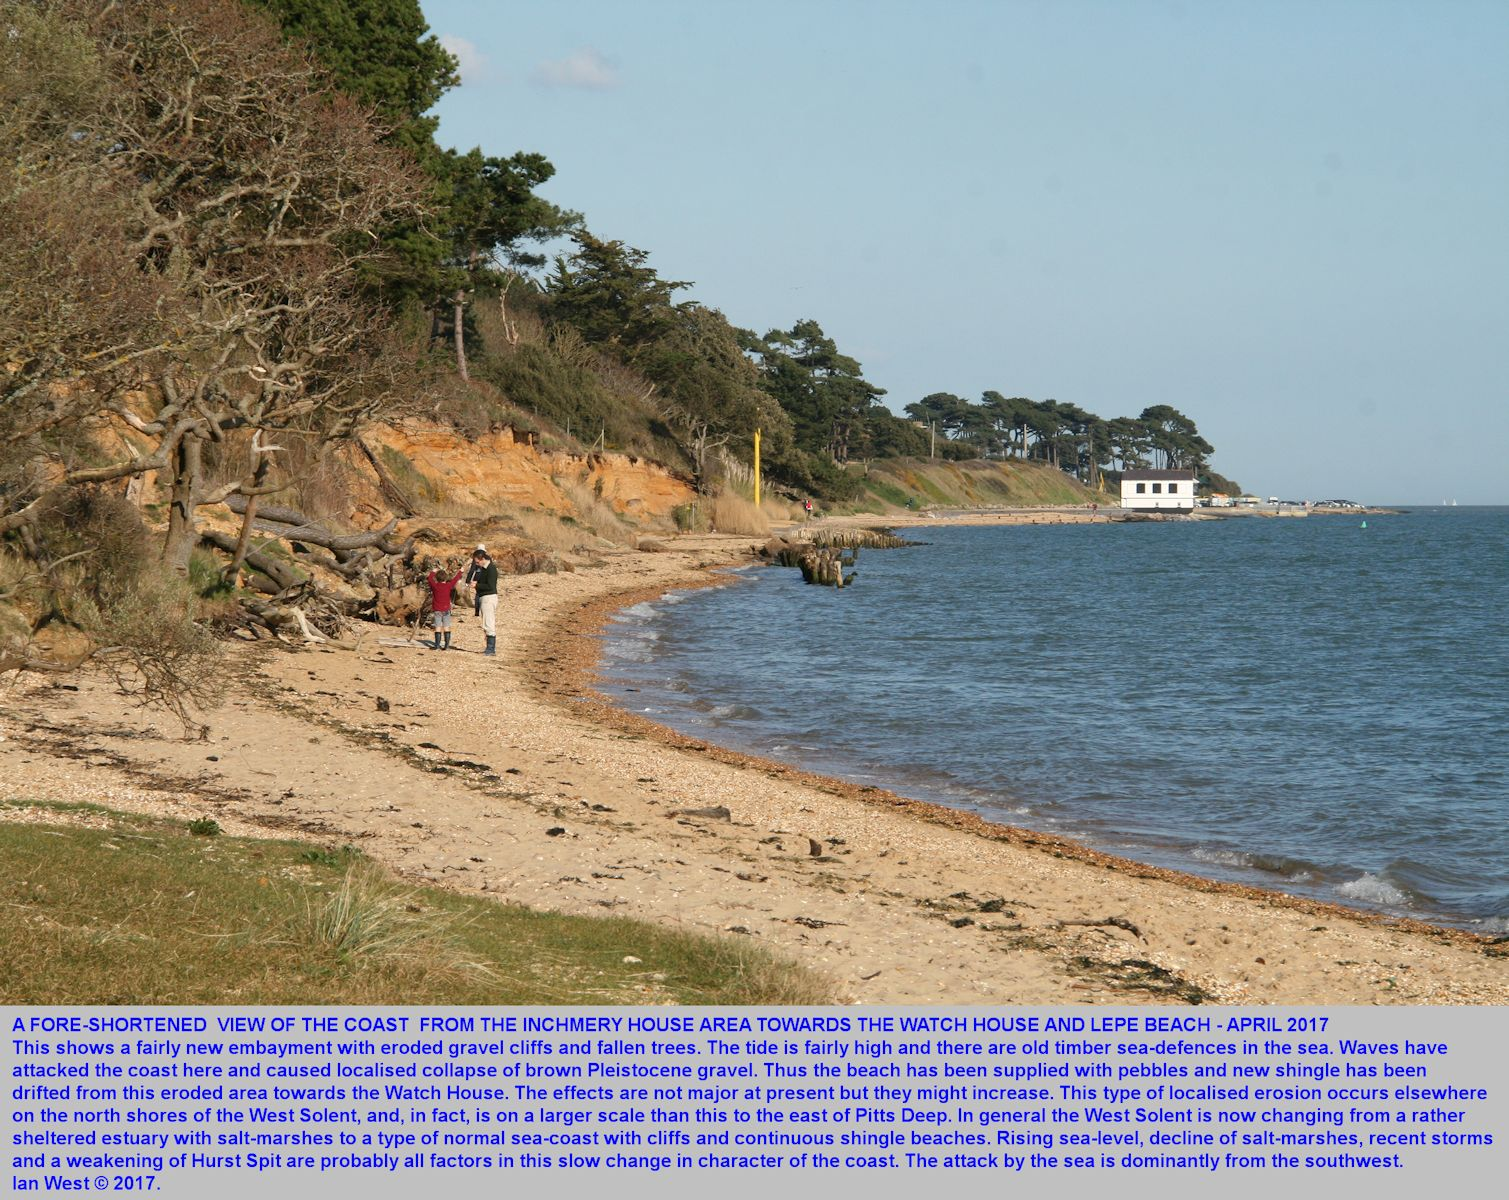 A fore-shortened view from the coast near Inchmery House eastward towards the Watch House, Lepe Beach, Hampshire, 2nd April 2017, showing localised coast erosion